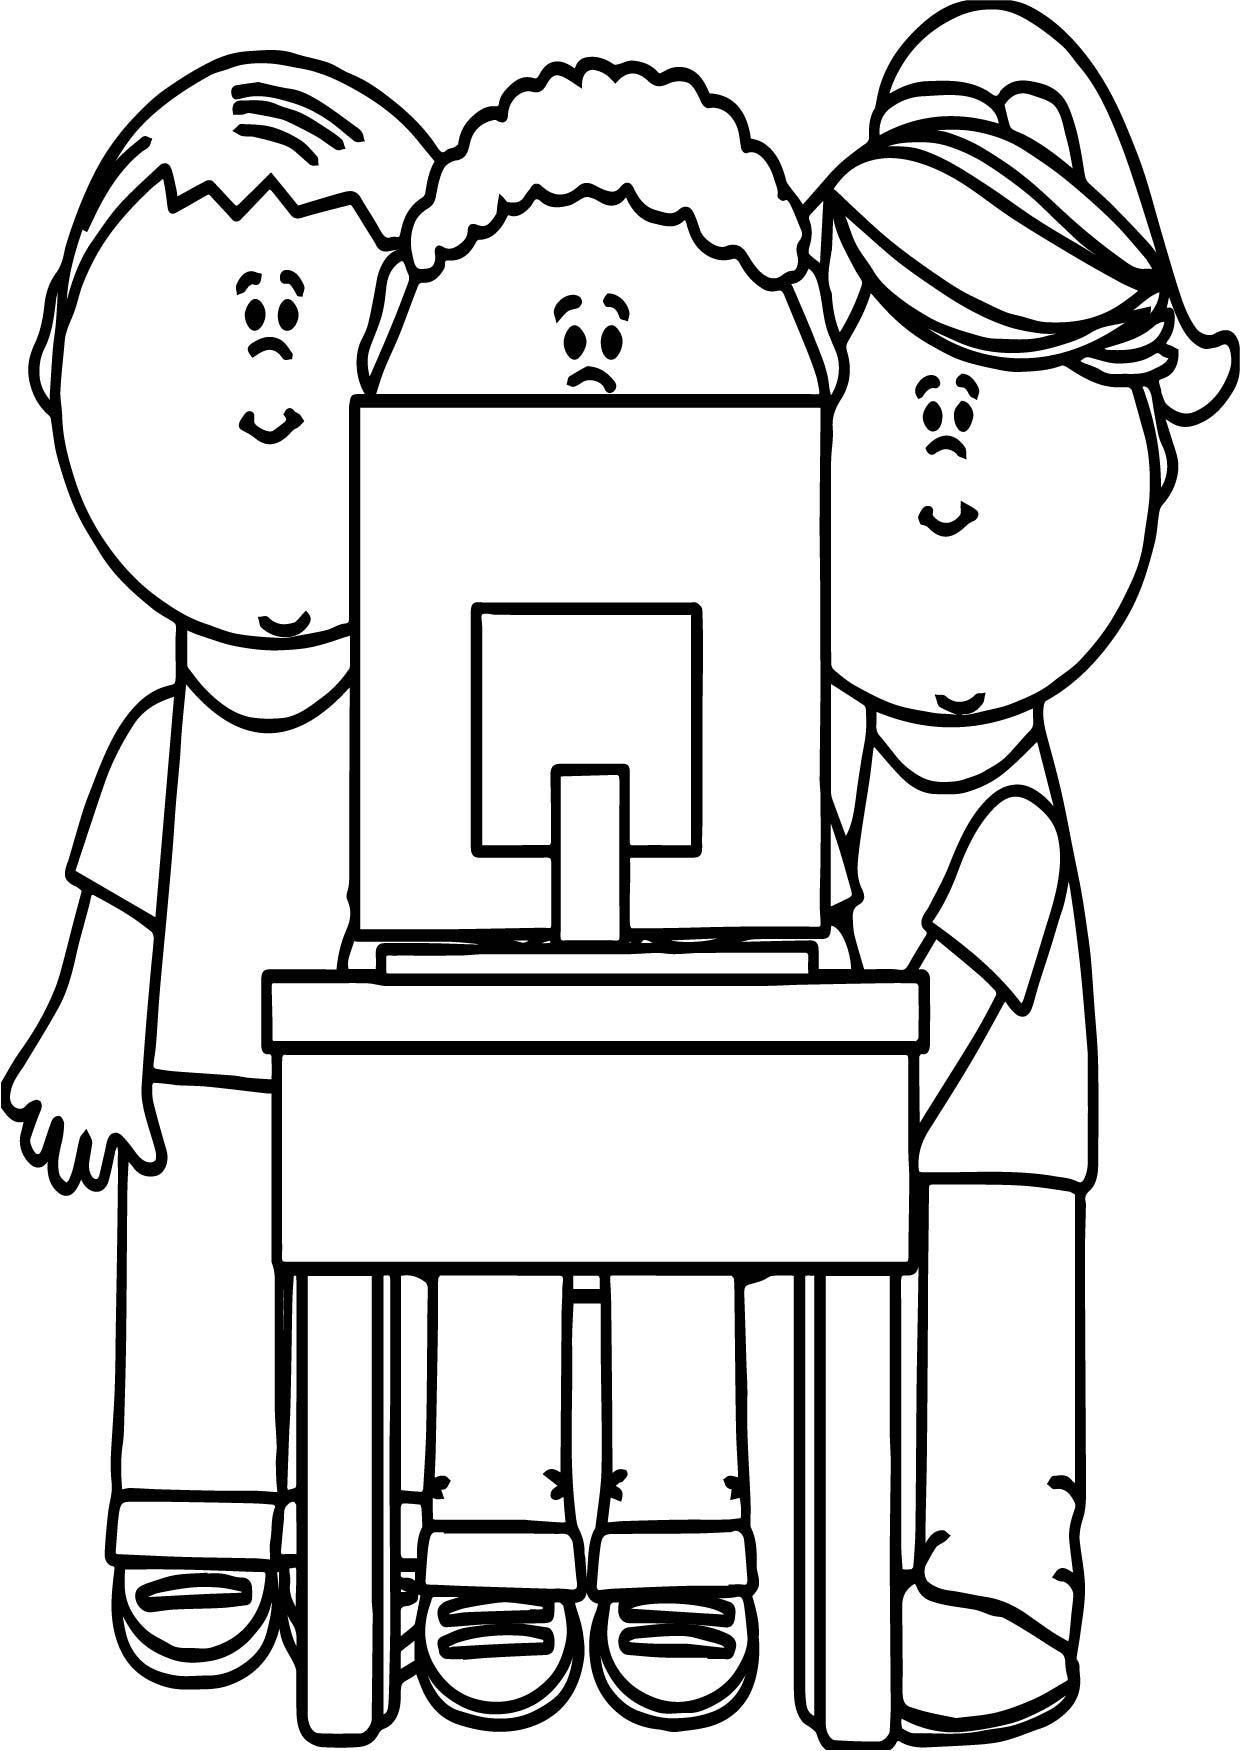 kids playing computer games coloring page - Kids Games Coloring